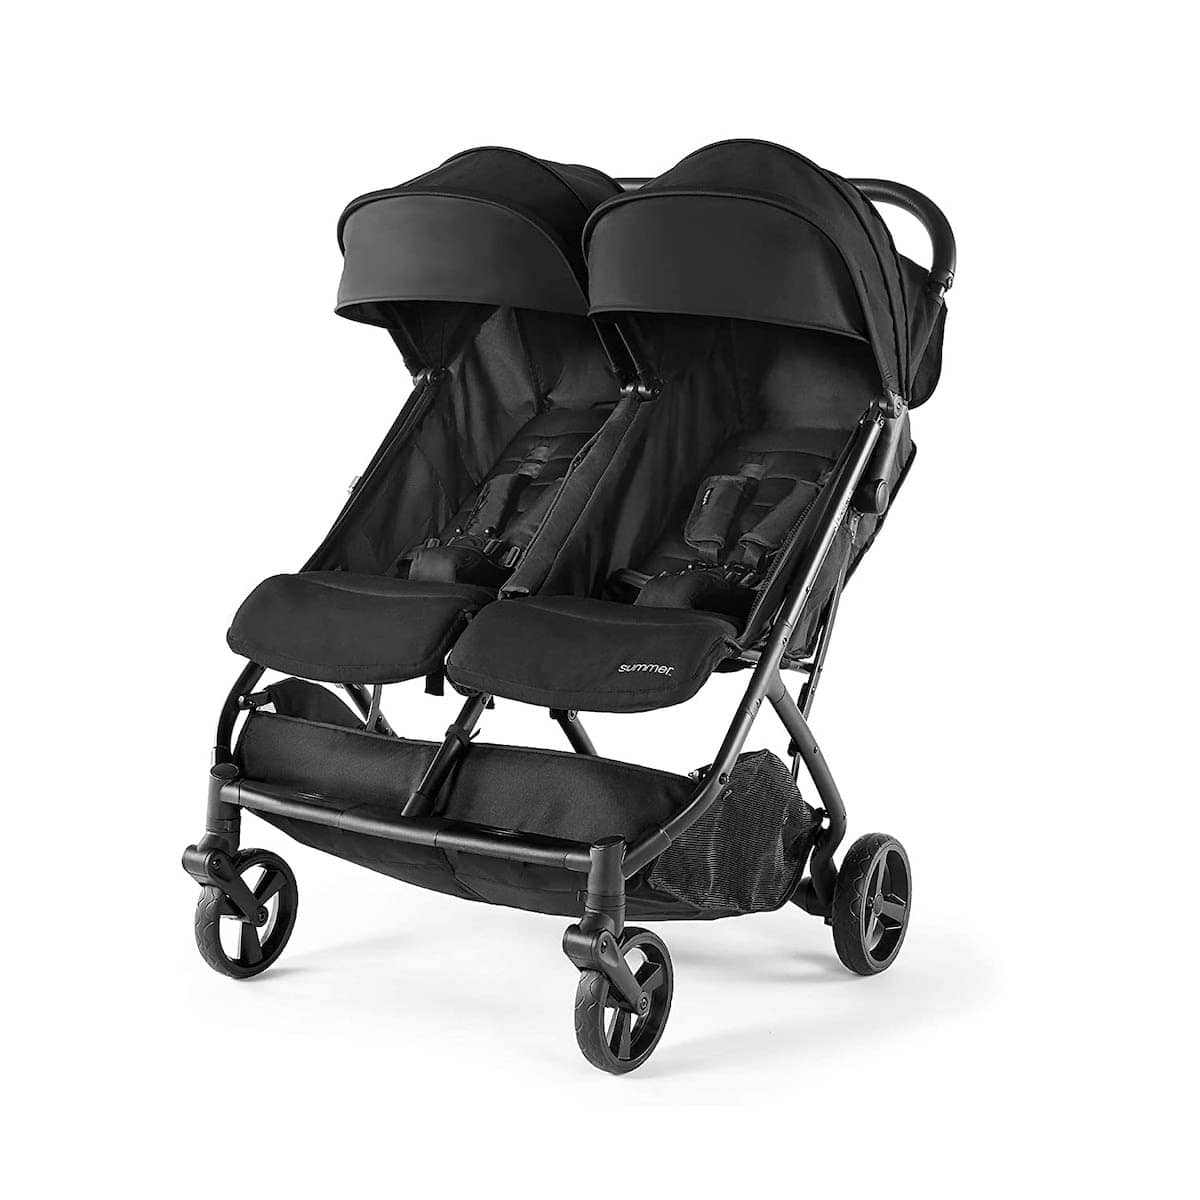 Stroller for Twins- 3dpac Cs+ Double Stroller